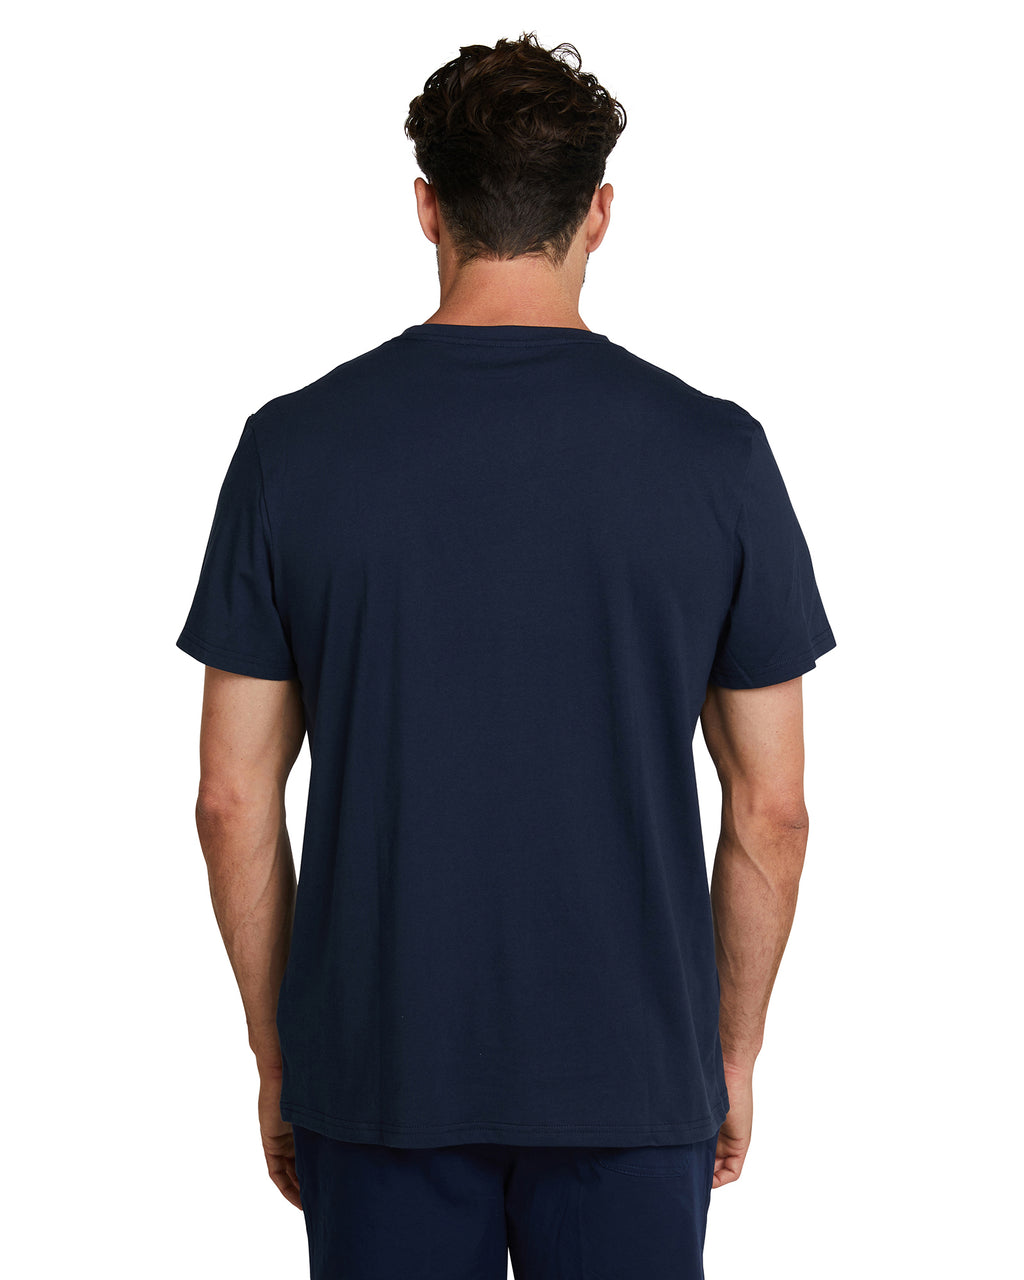 T'S - New Age - Navy